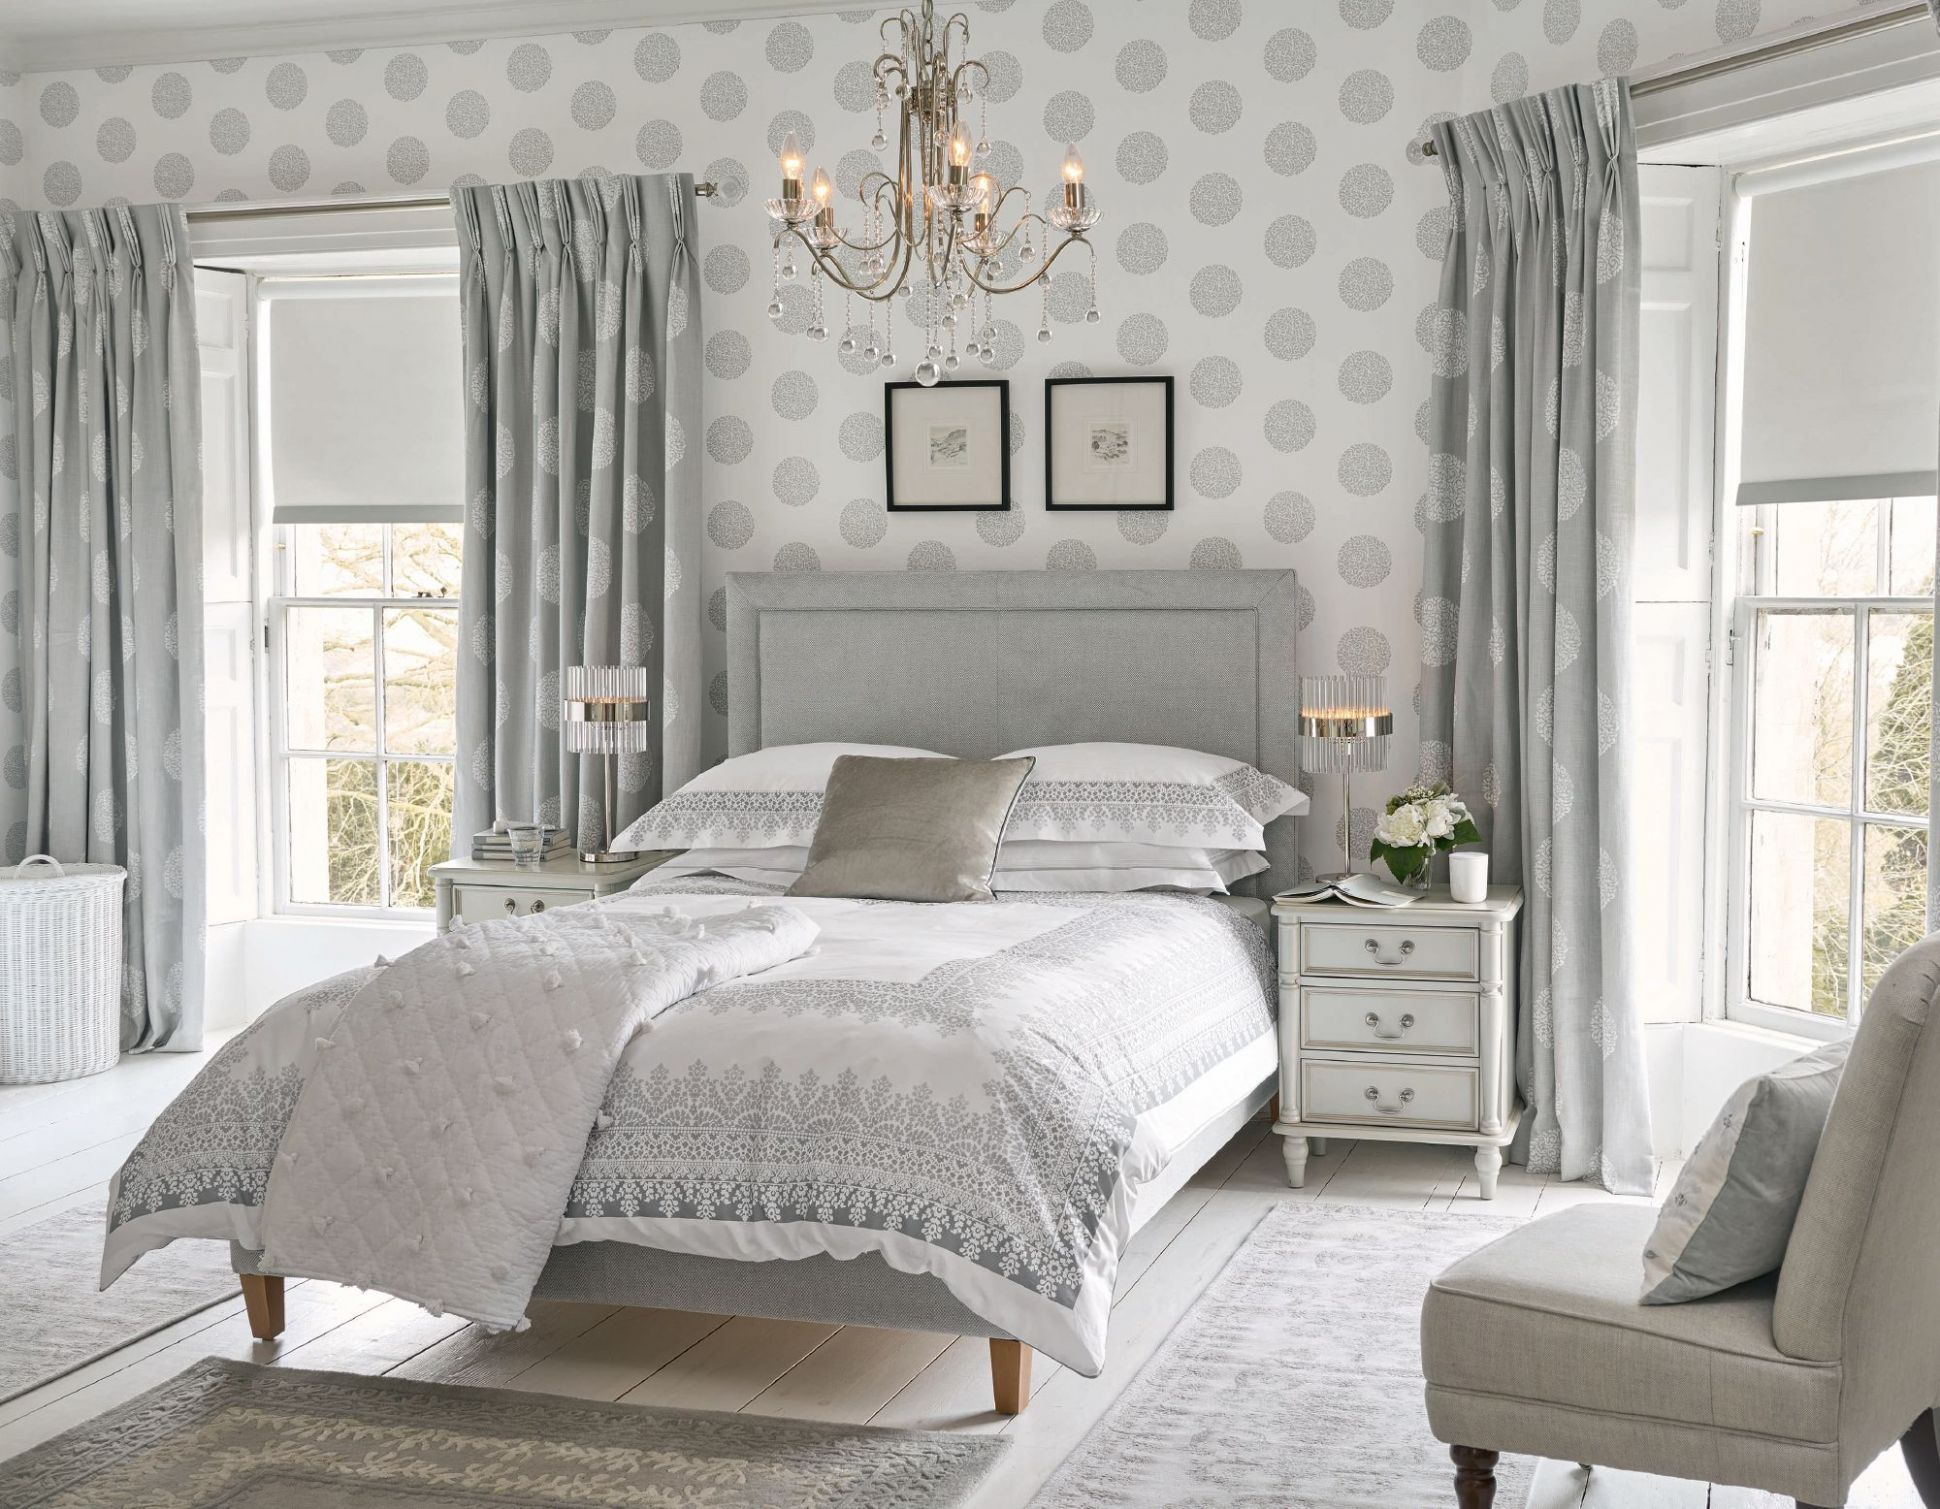 Bedroom Ideas To Fall In Love With | Ashley bedroom, Silver ...